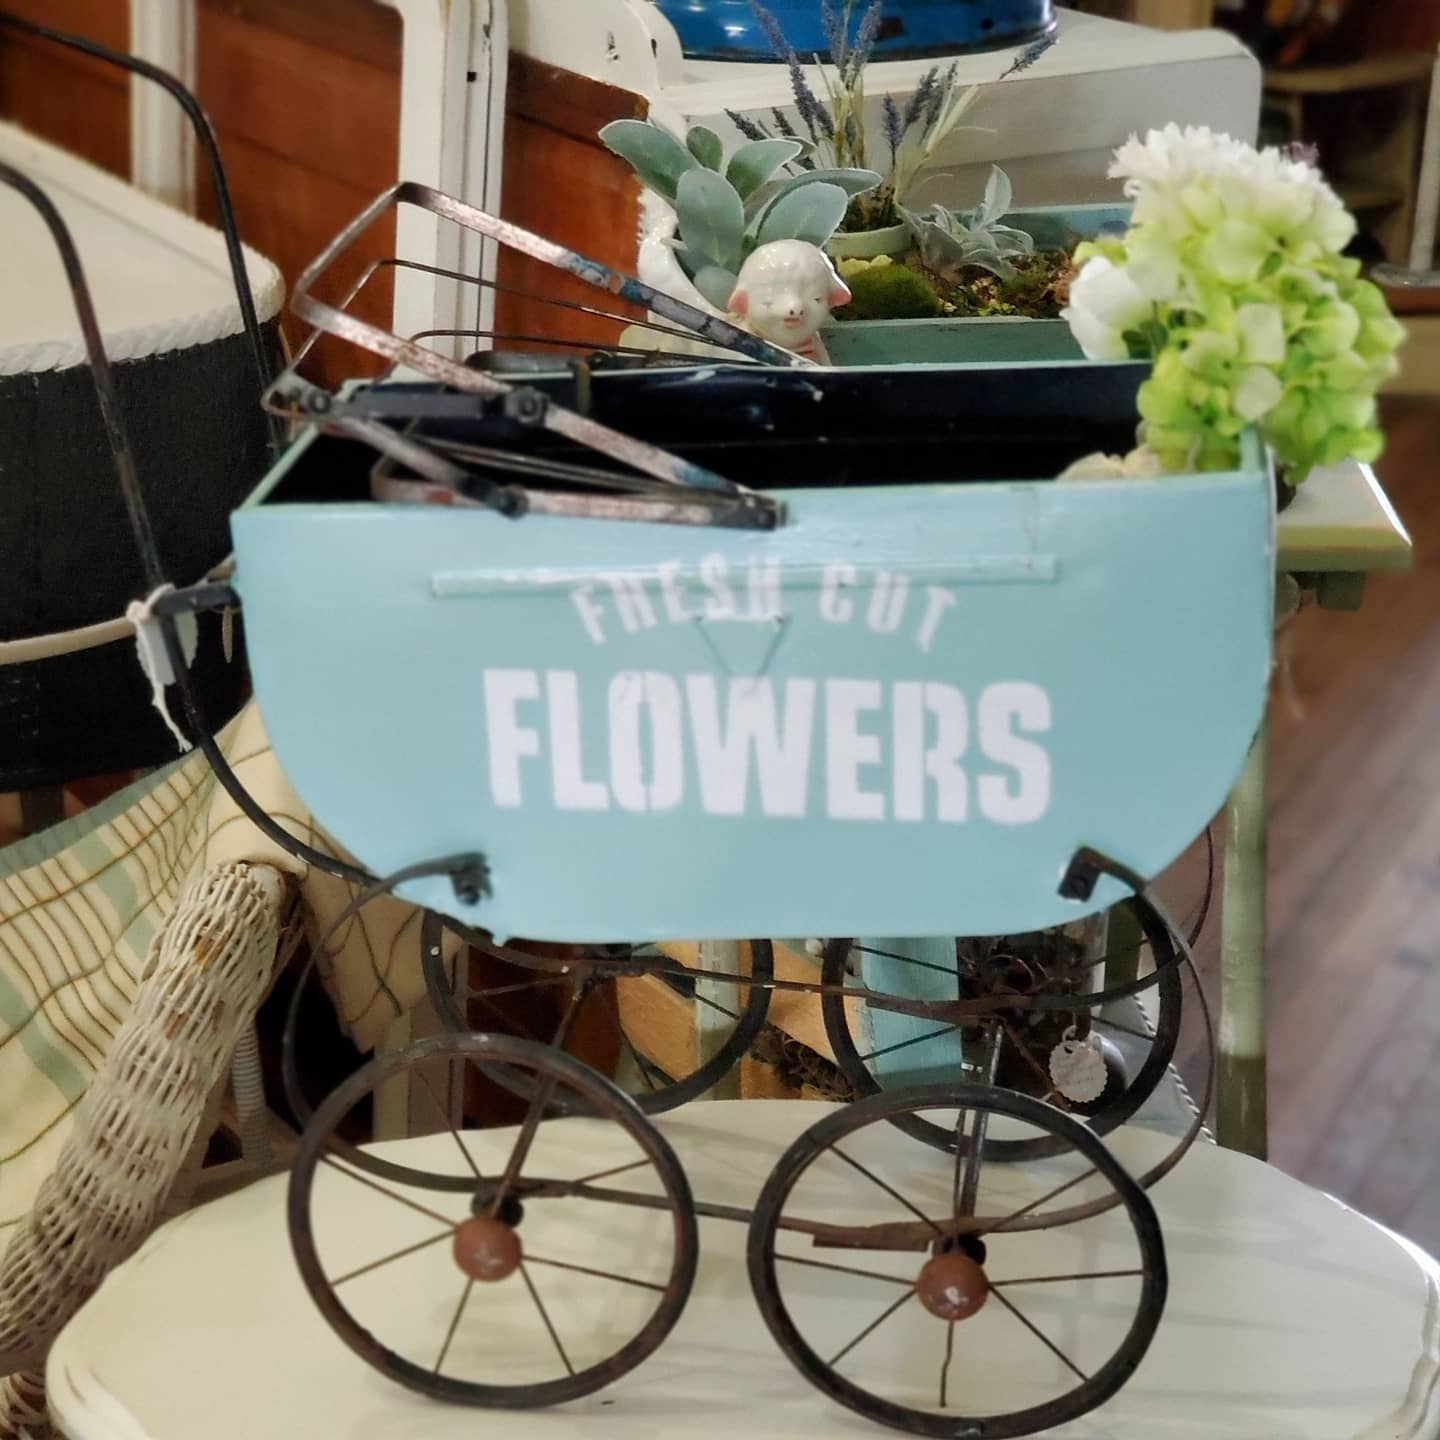 Fresh Cut Flowers vintage buggy by Junky Encores, featured on DIY Salvaged Junk Projects 565 on Funky Junk!